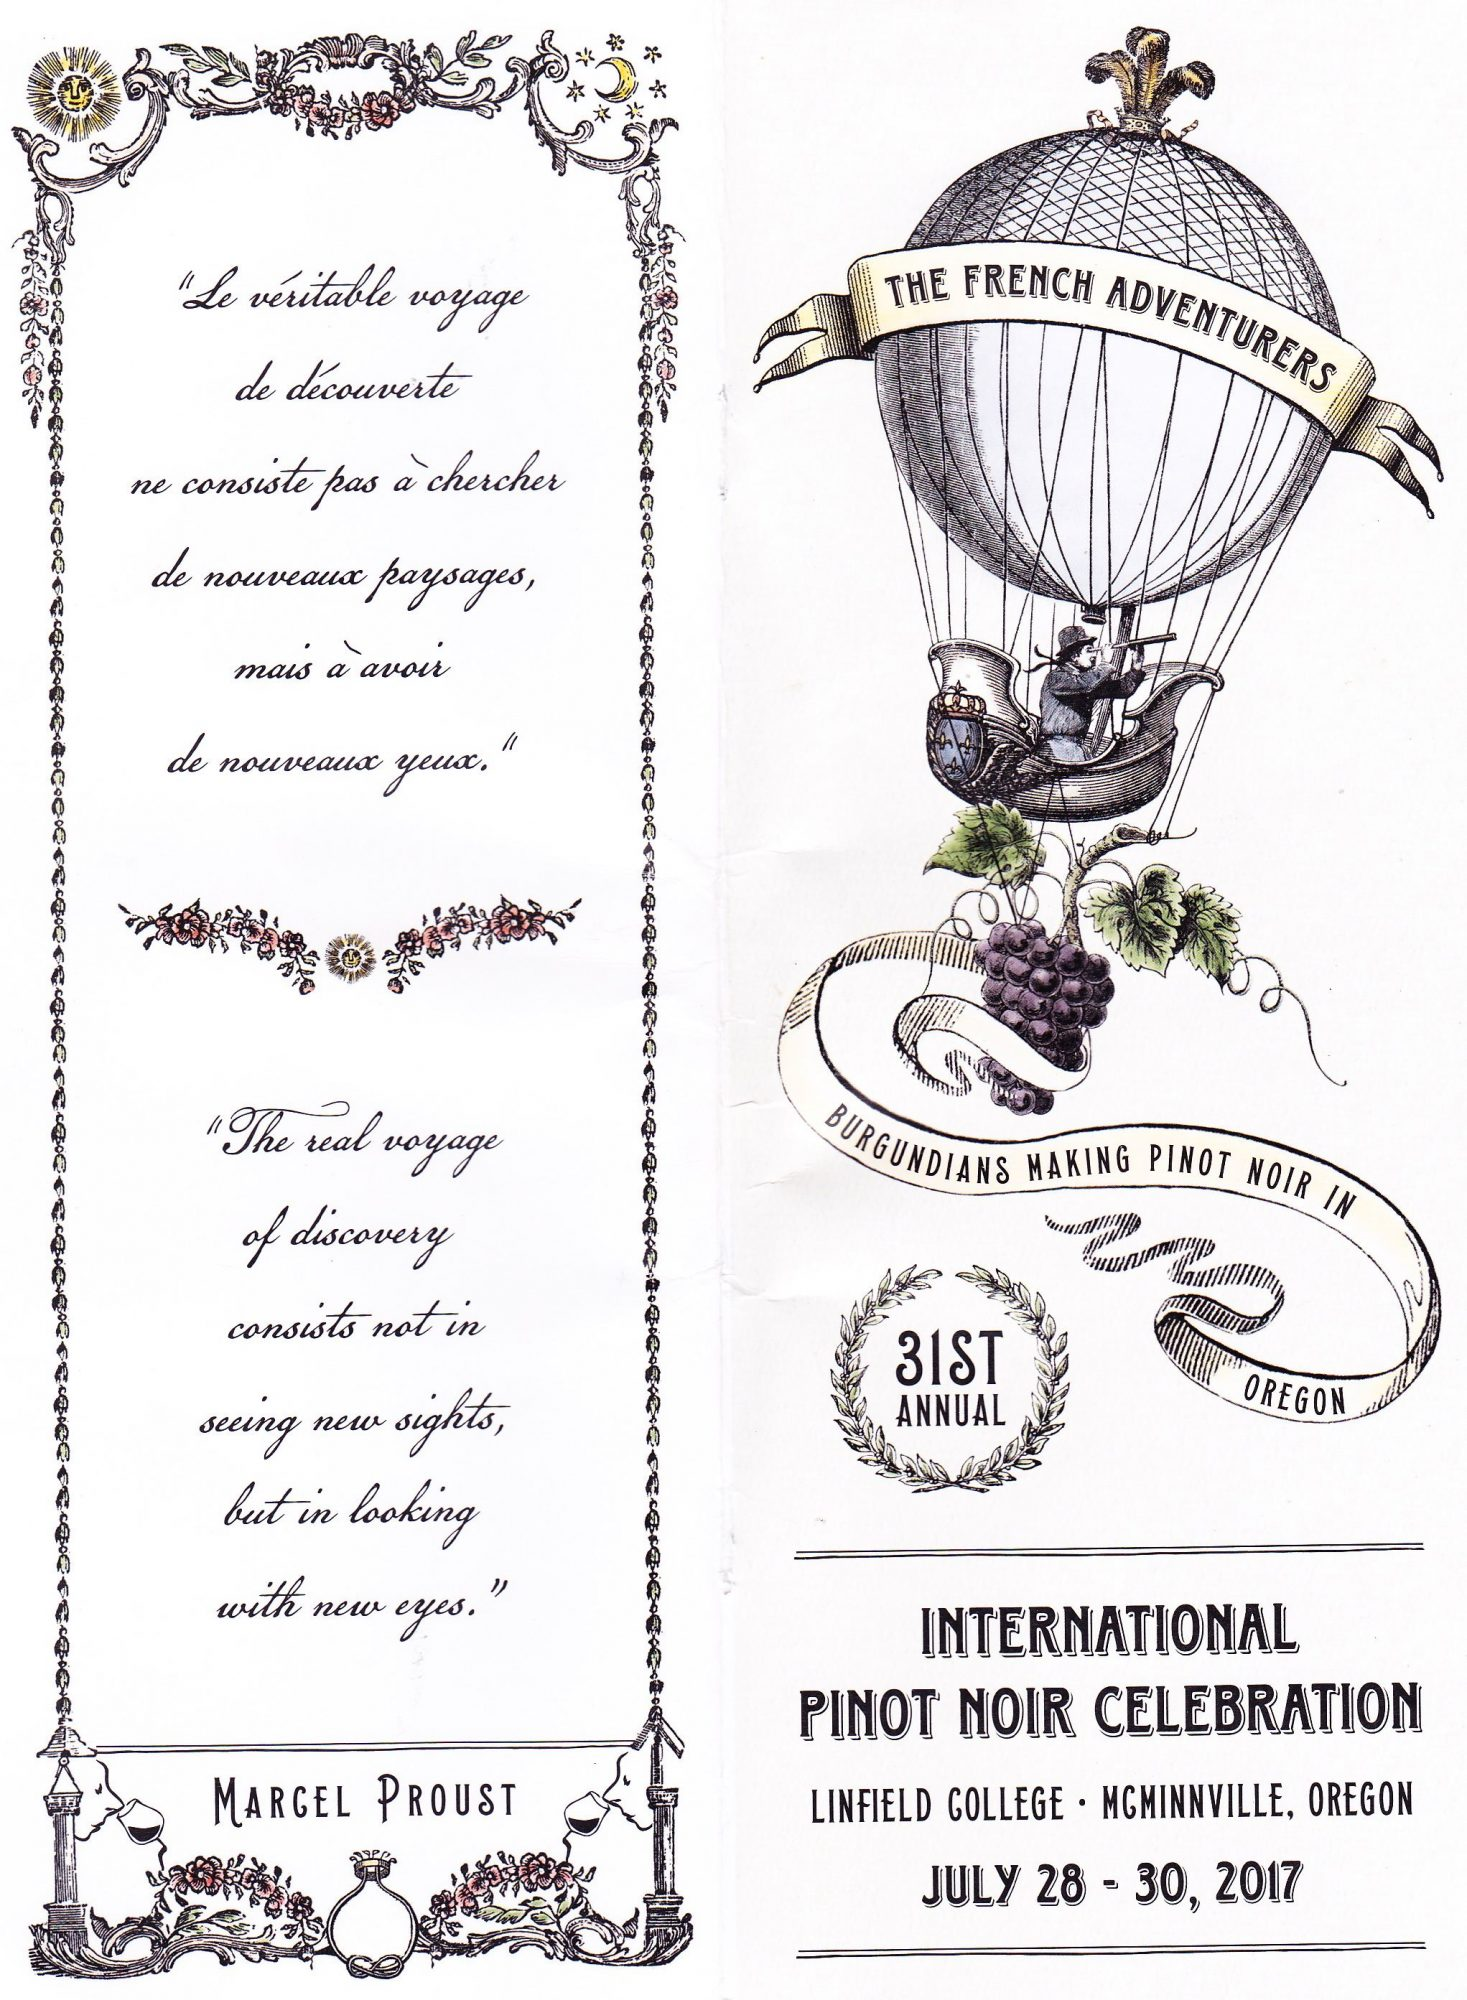 On Pinot Trail in Willamette Valley & at International Pinot Noir Celebration Pt I